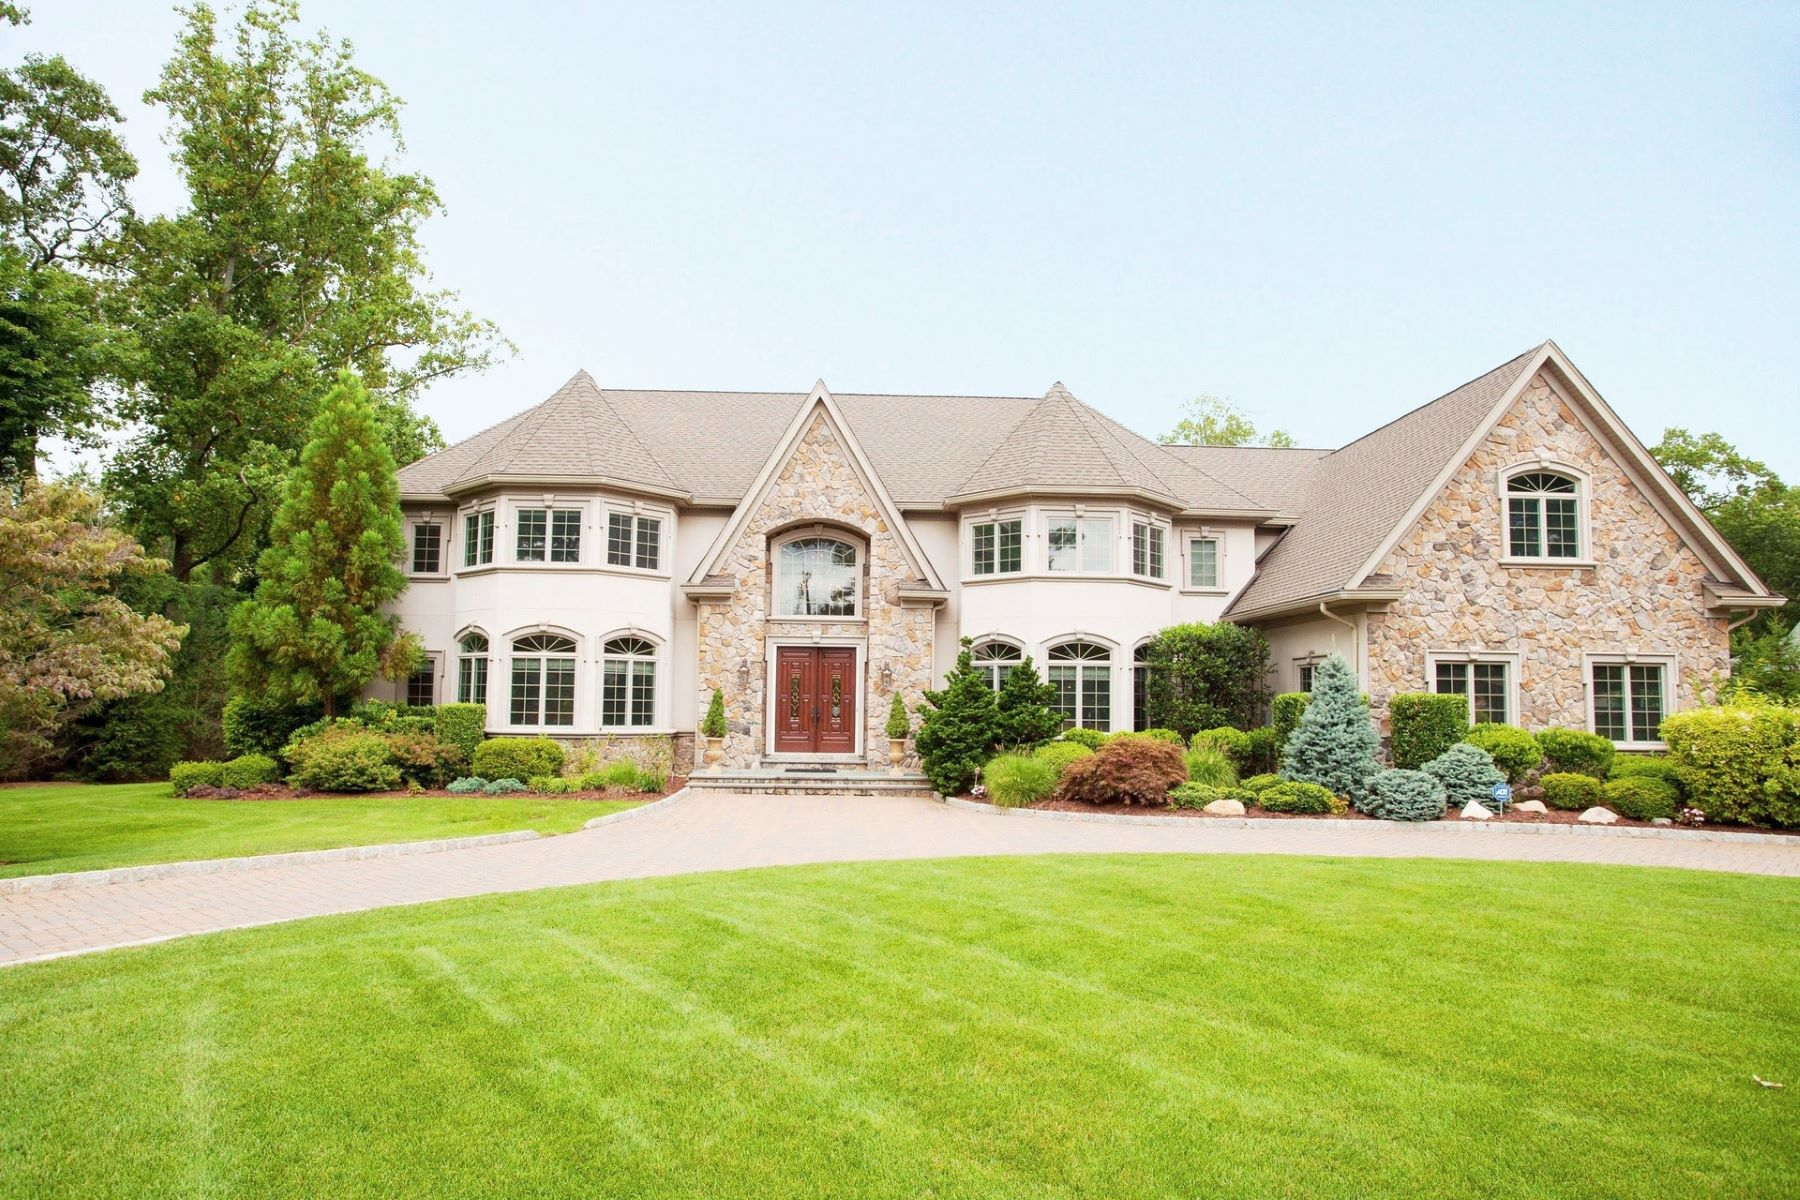 Single Family Homes for Sale at Exclusive Gated Estate 291 Chestnut Ridge Road, Woodcliff Lake, New Jersey 07677 United States